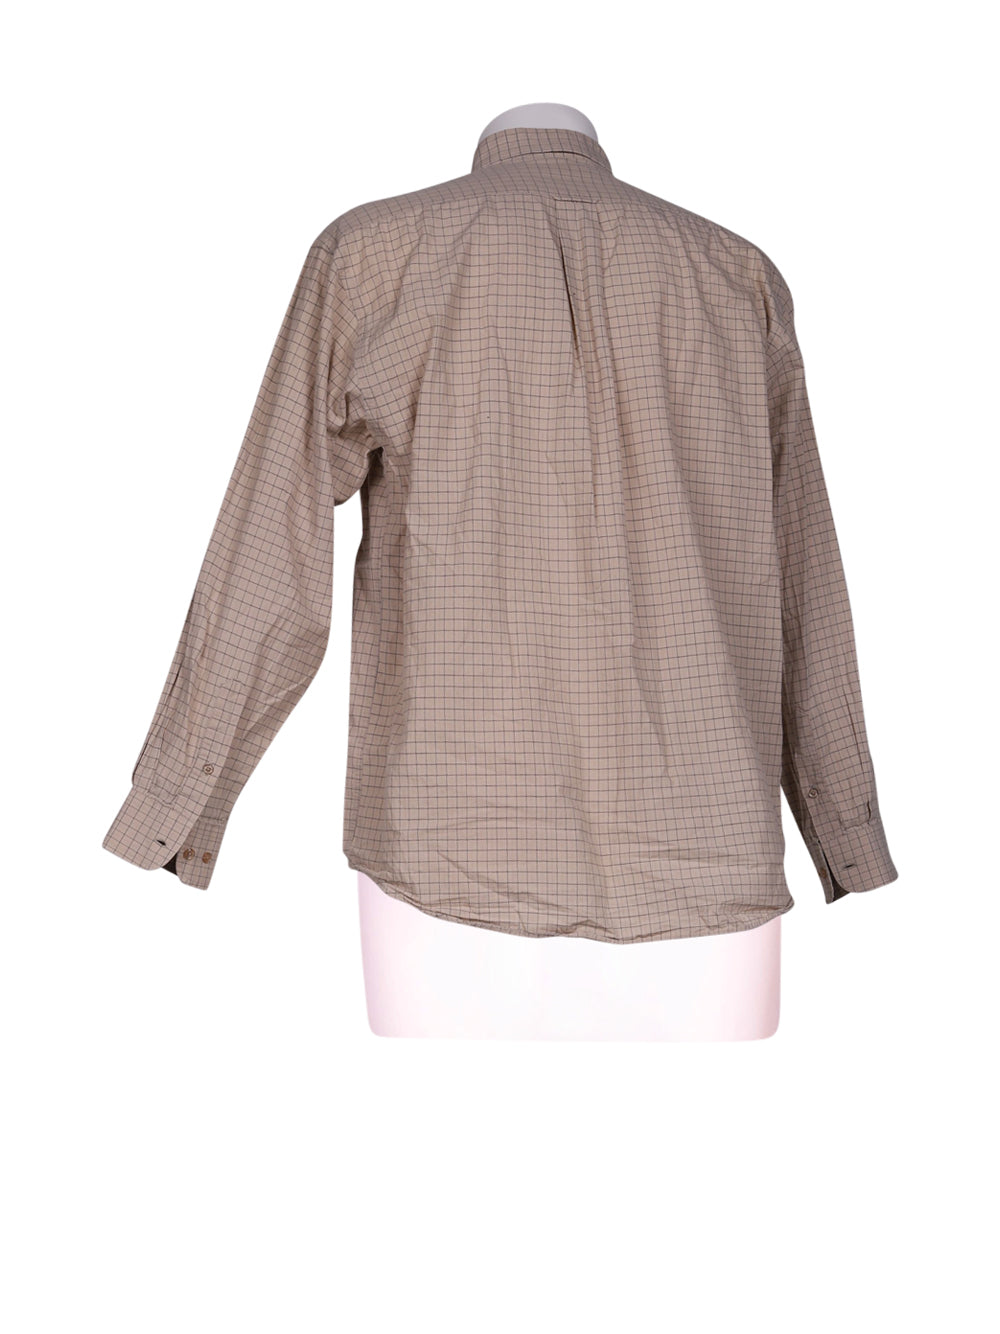 Back photo of Preloved Danny Beige Man's shirt - size 40/L